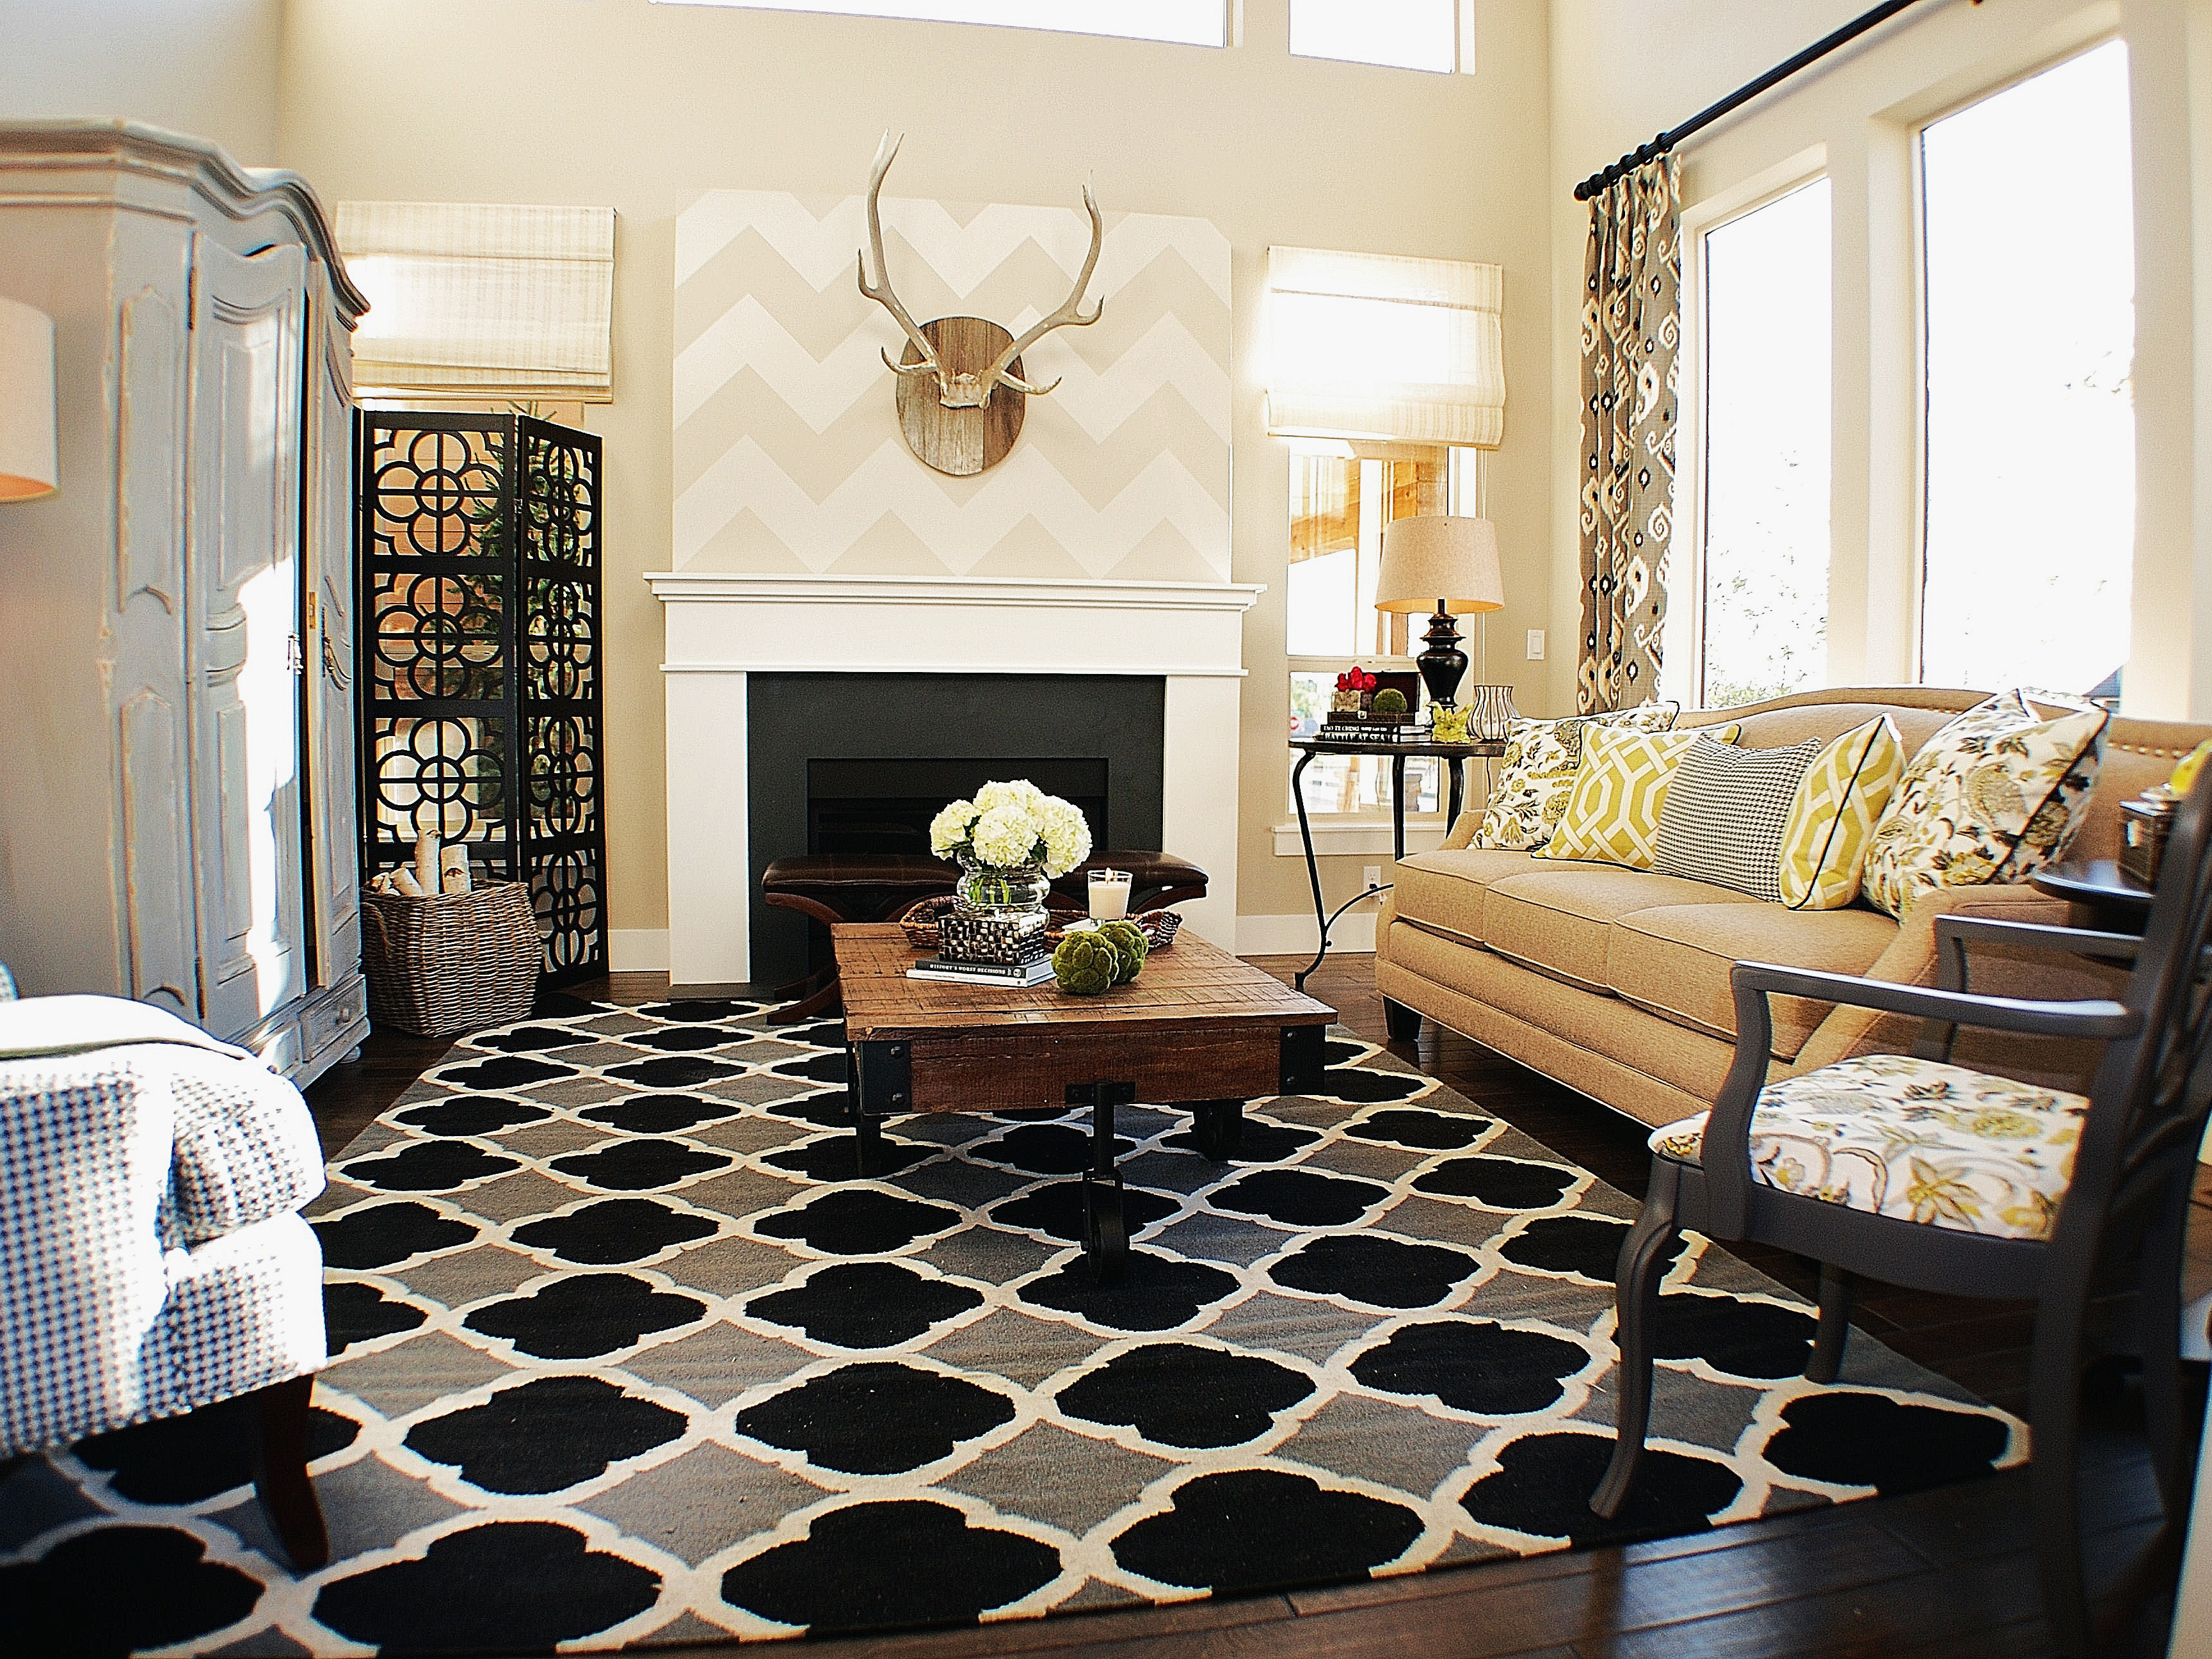 Moroccan Inspired Living Room With With Black And Yellow Accents (Image 22 of 25)